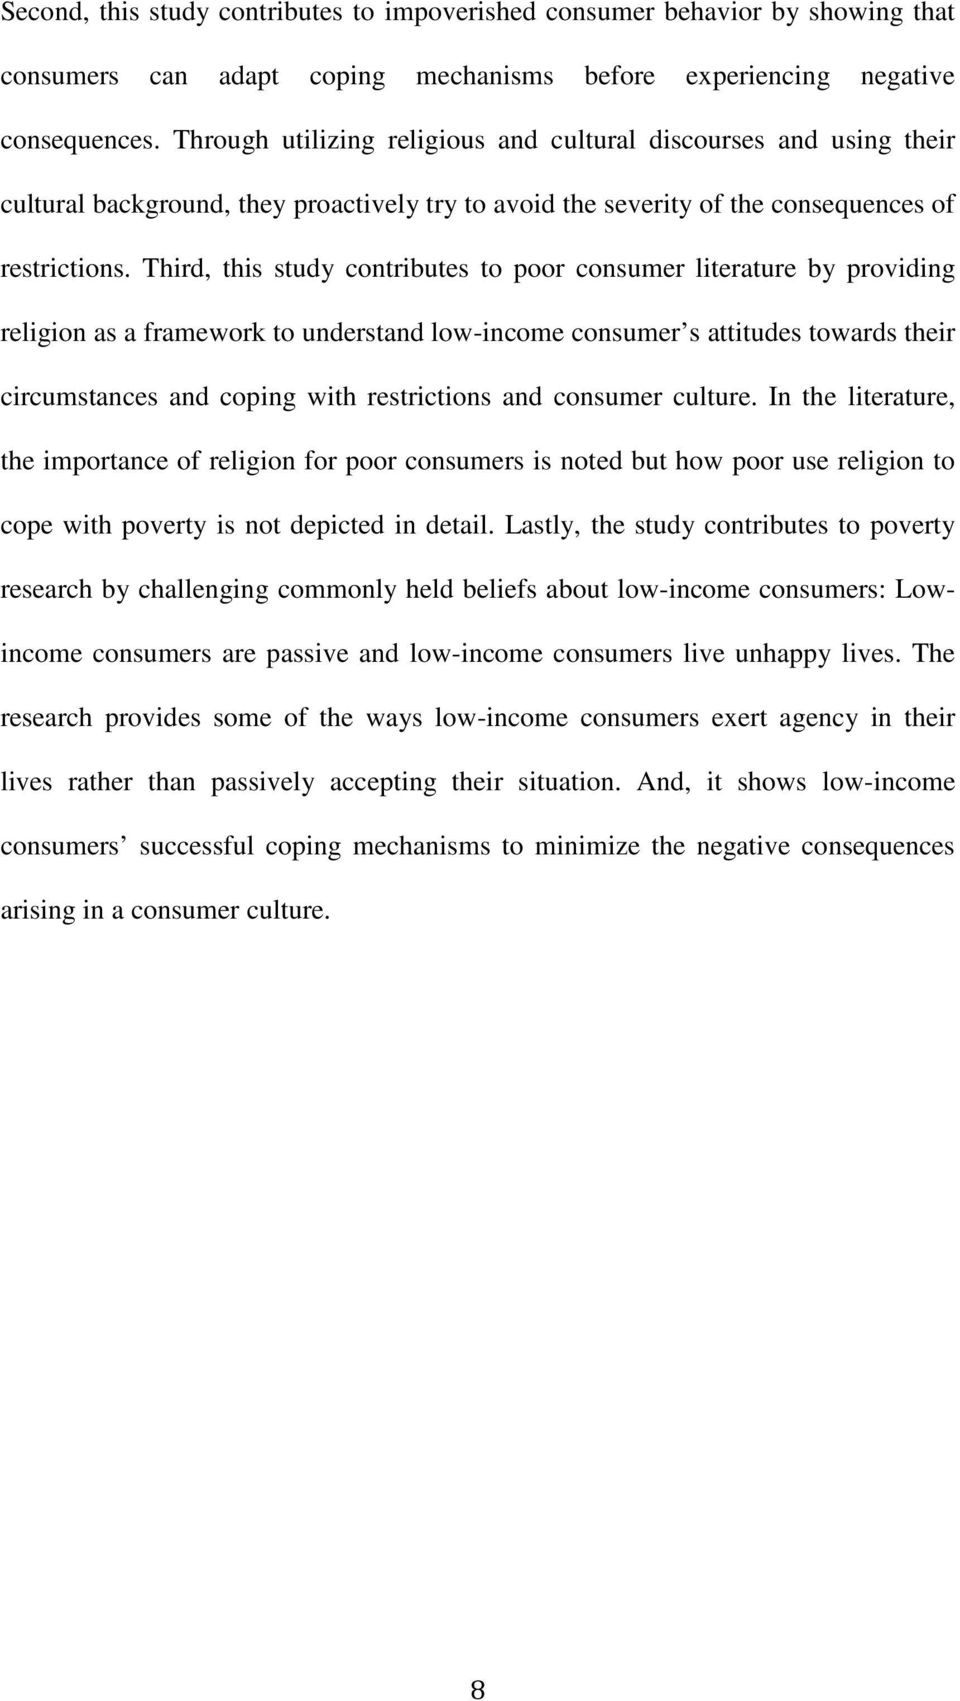 Third, this study contributes to poor consumer literature by providing religion as a framework to understand low-income consumer s attitudes towards their circumstances and coping with restrictions